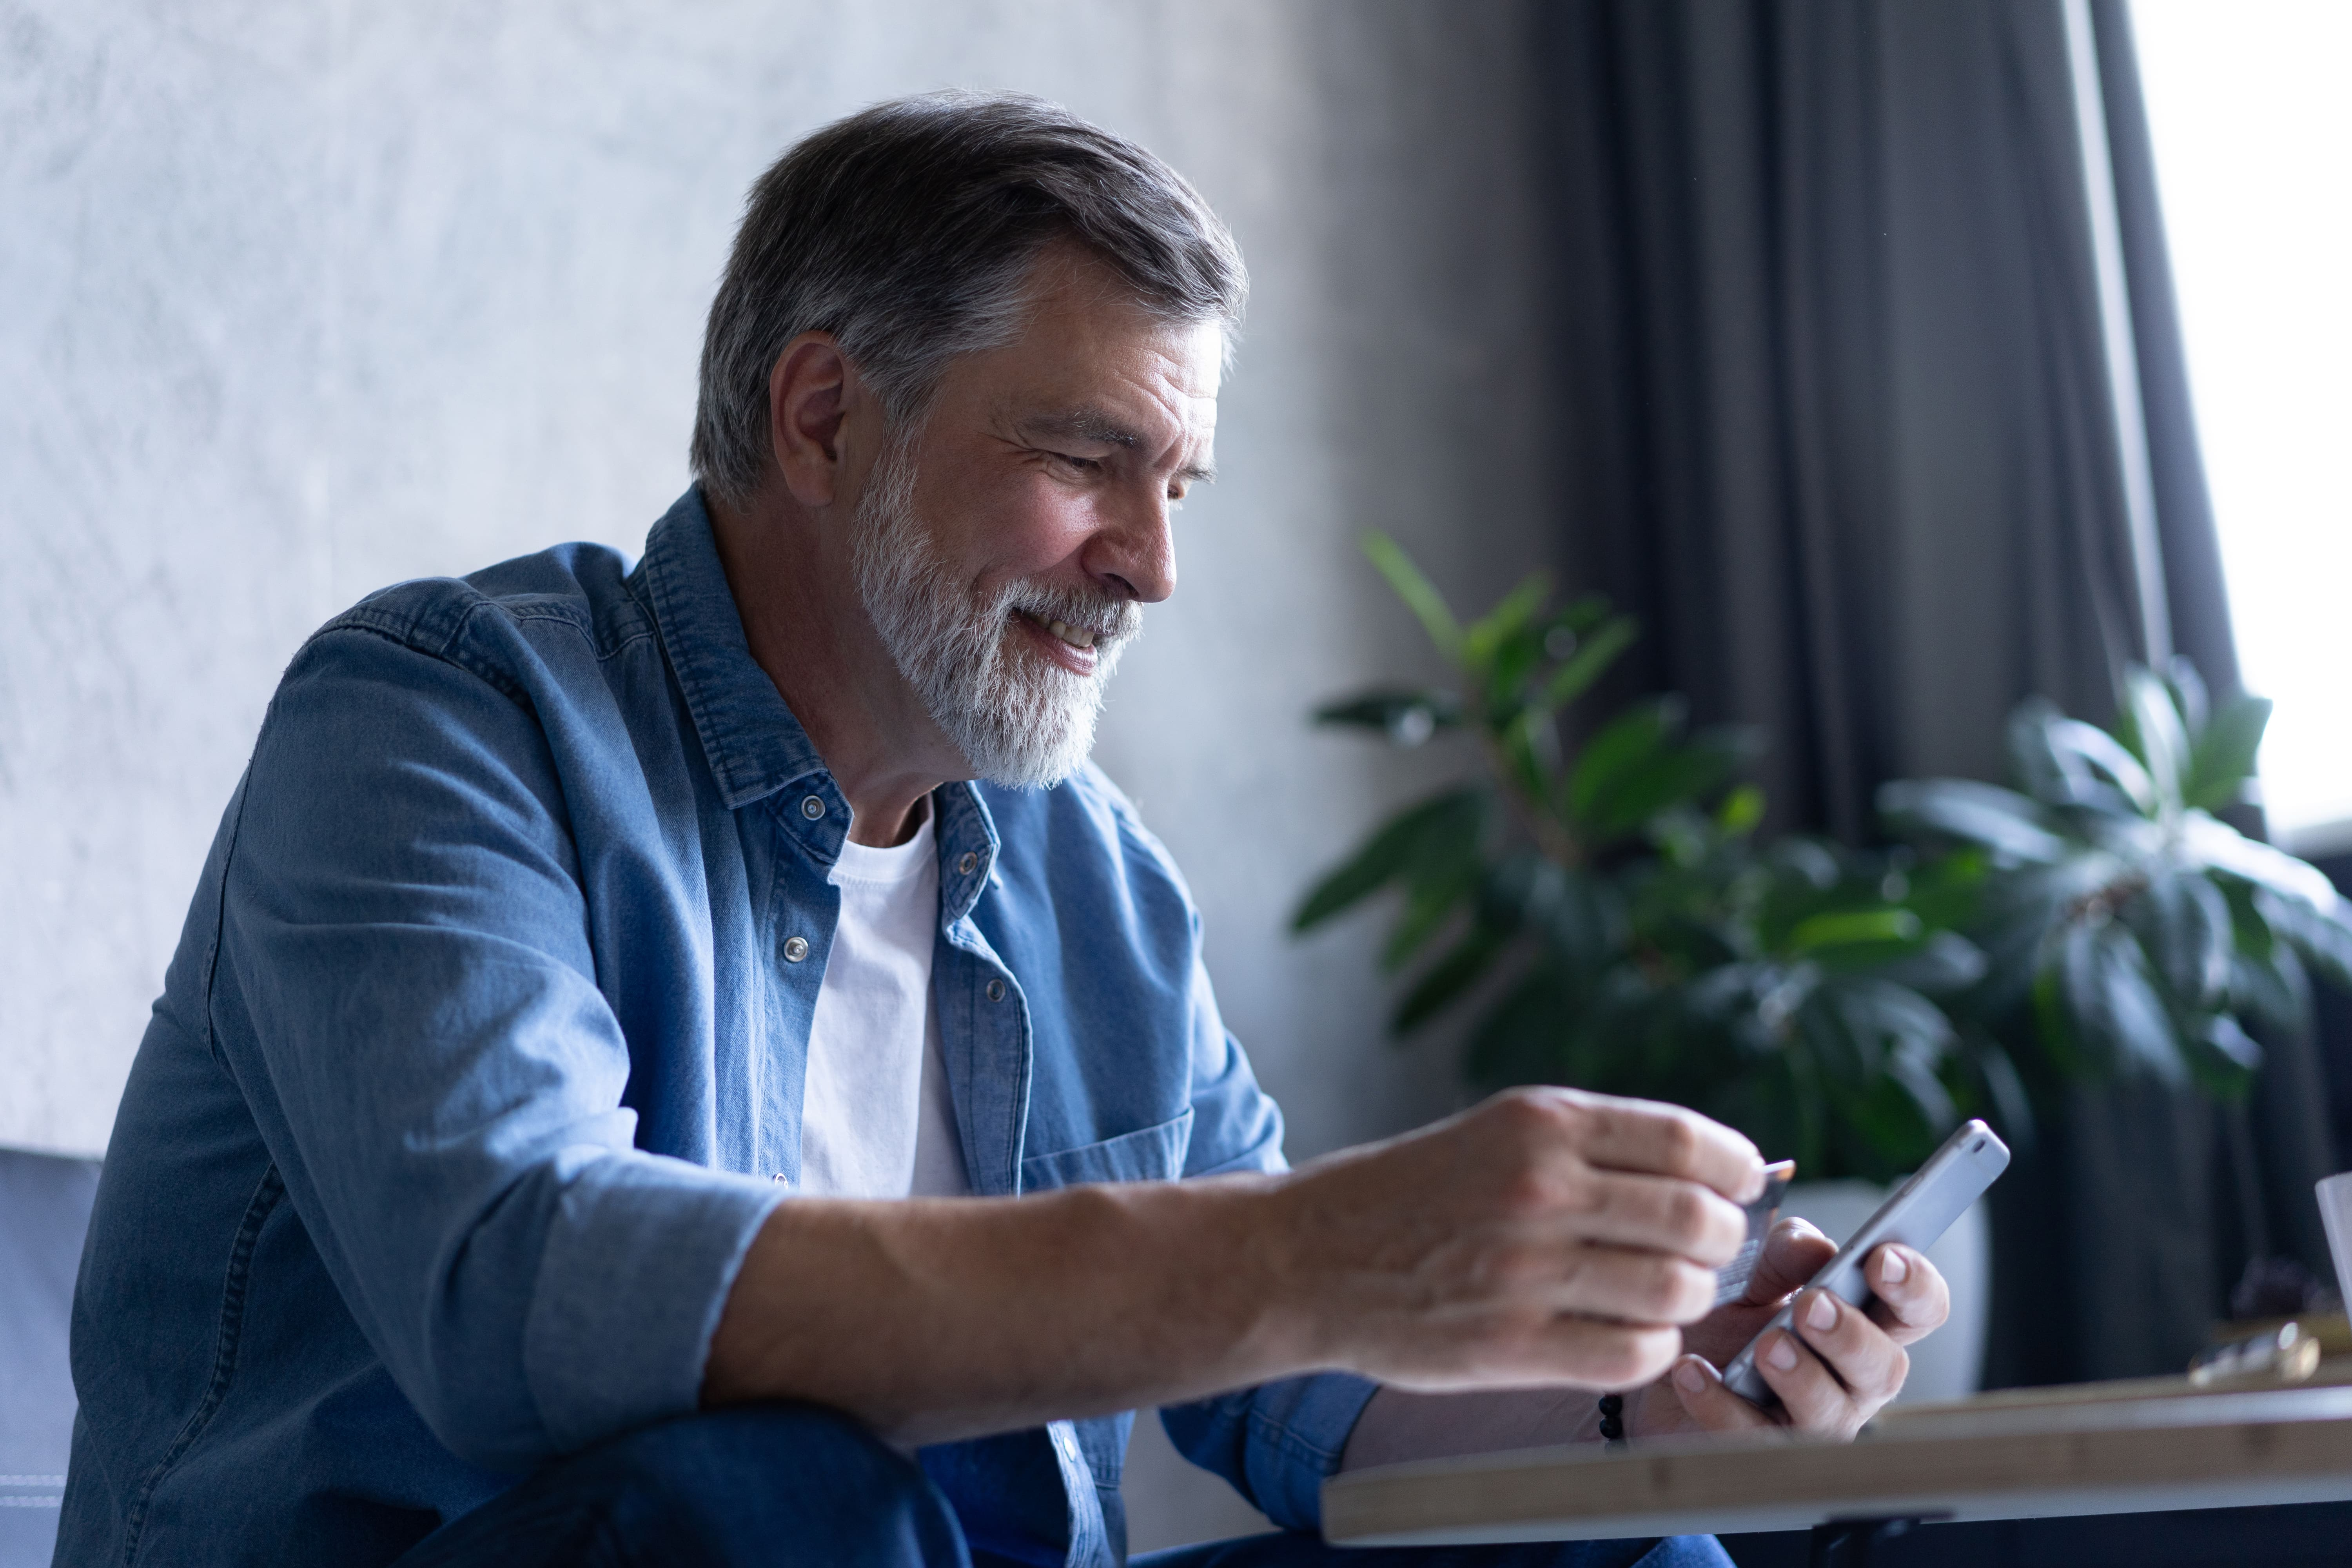 smiling-gray-haired-50s-man-pay-bills-online-using-modern-smartphone-gadget-credit-card-happy-mature-bank-client-make-internet-payment-purchase-cellphone-from-home-technology-concept-min